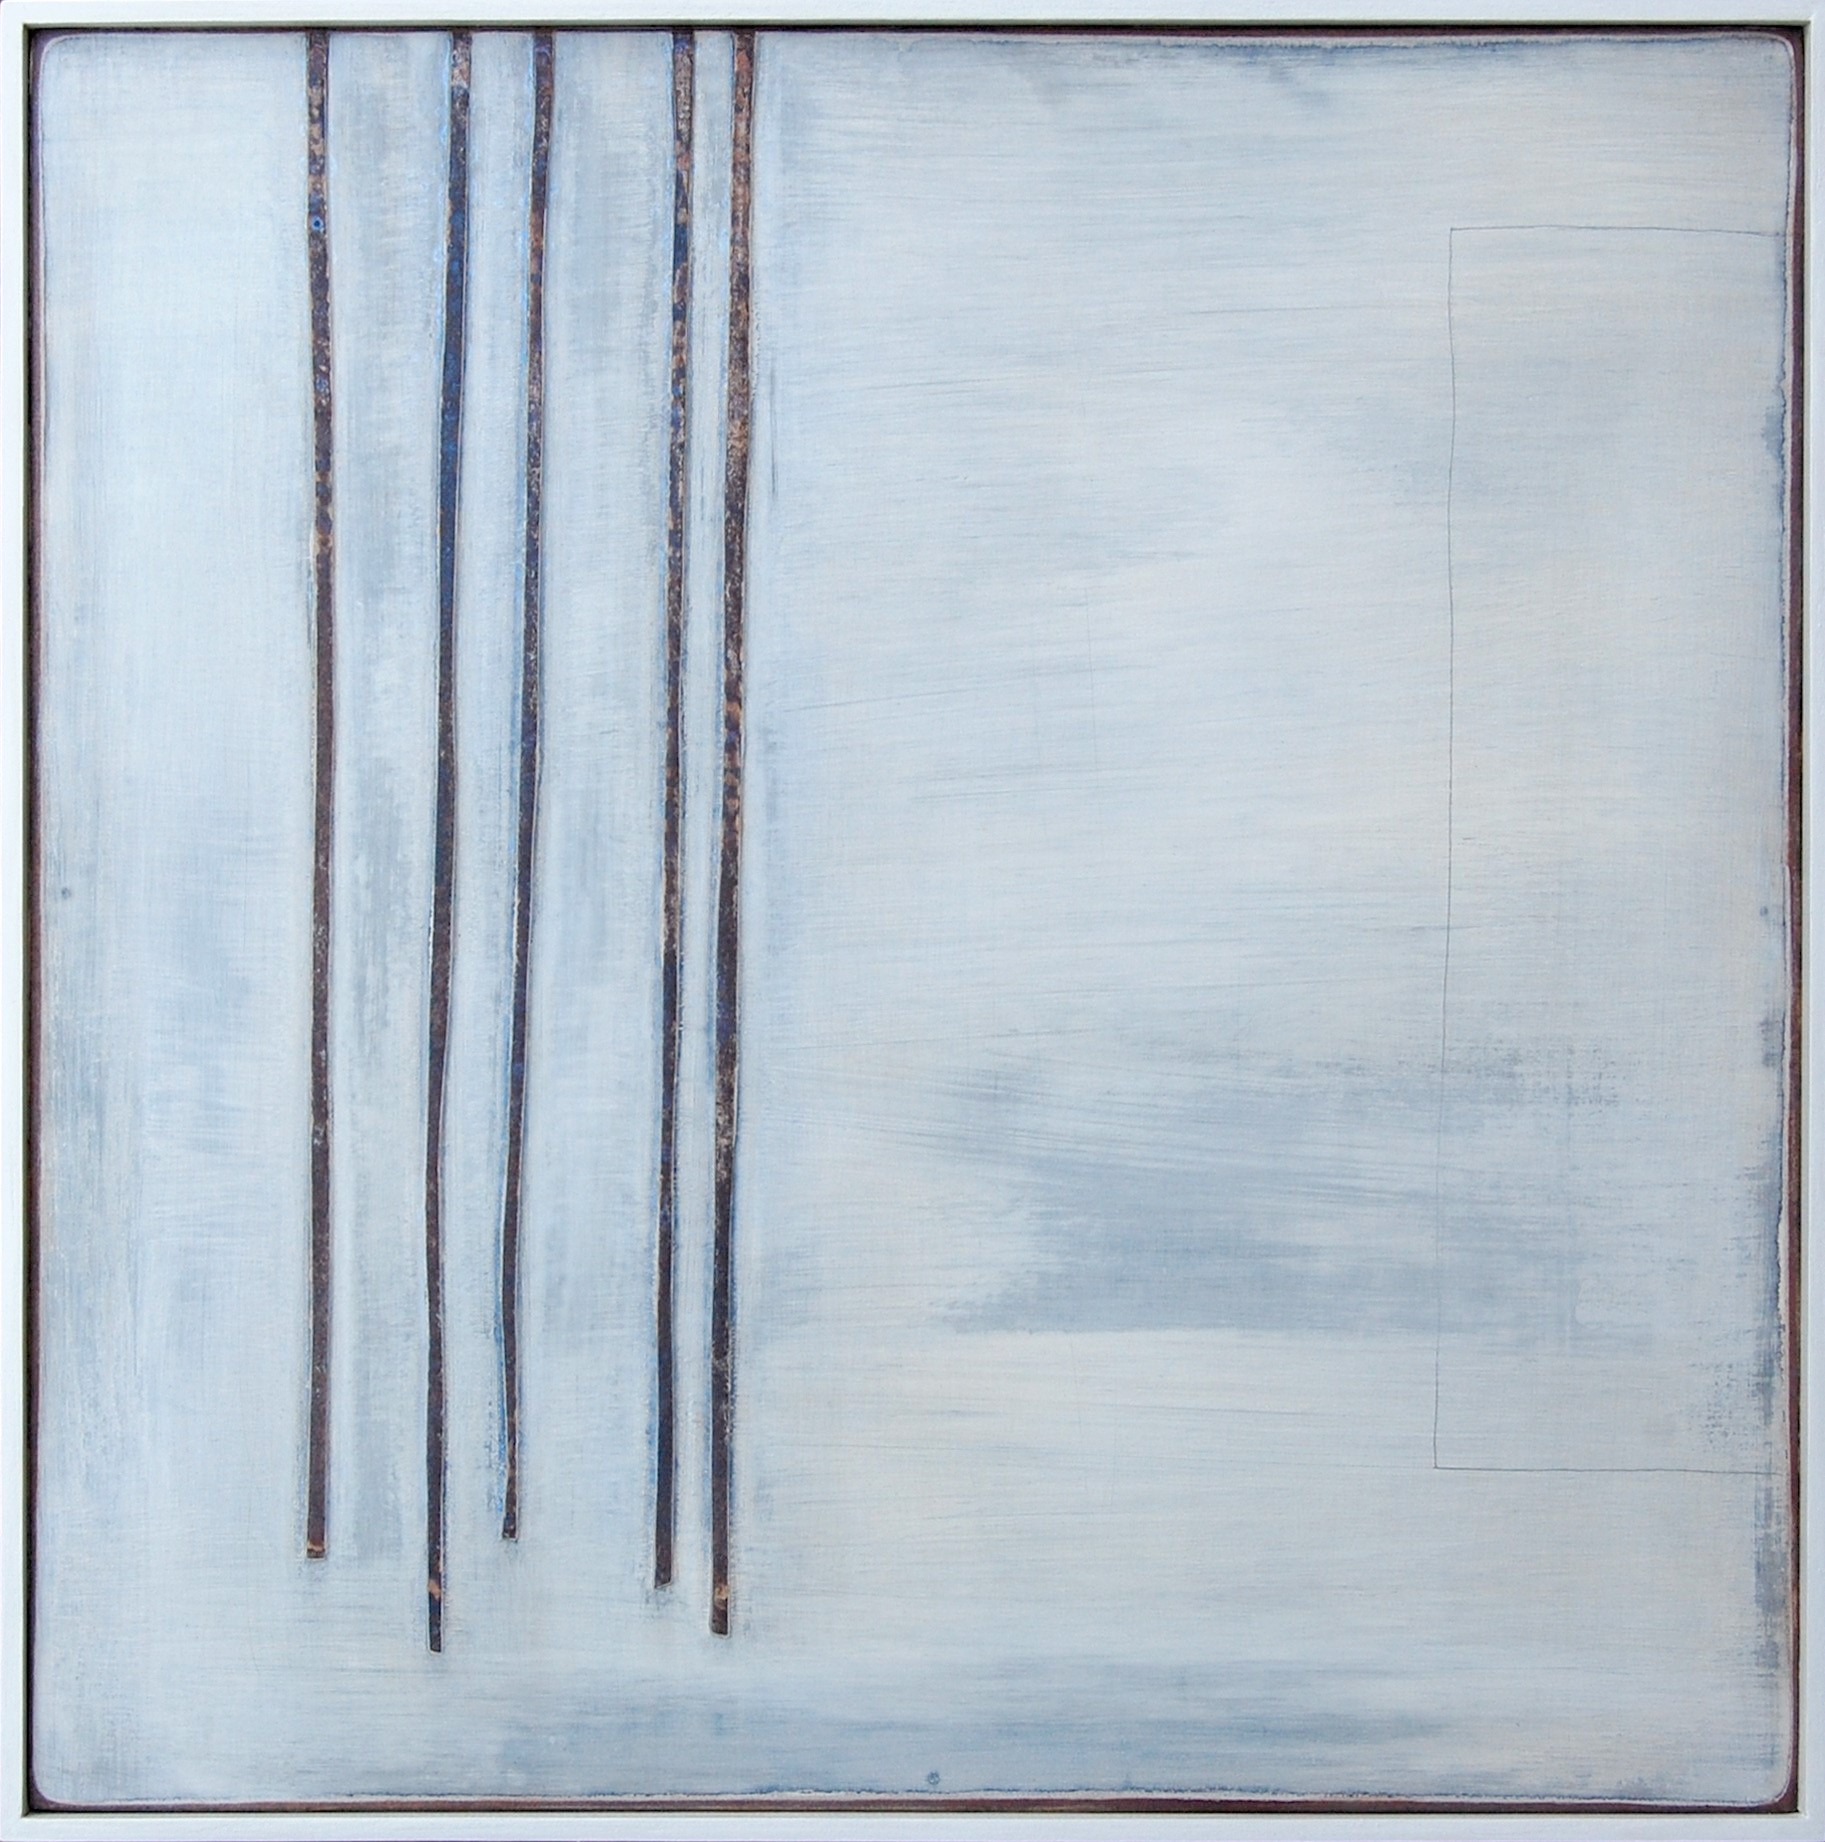 Stillness,30x30cms gesso , card and pencil on board